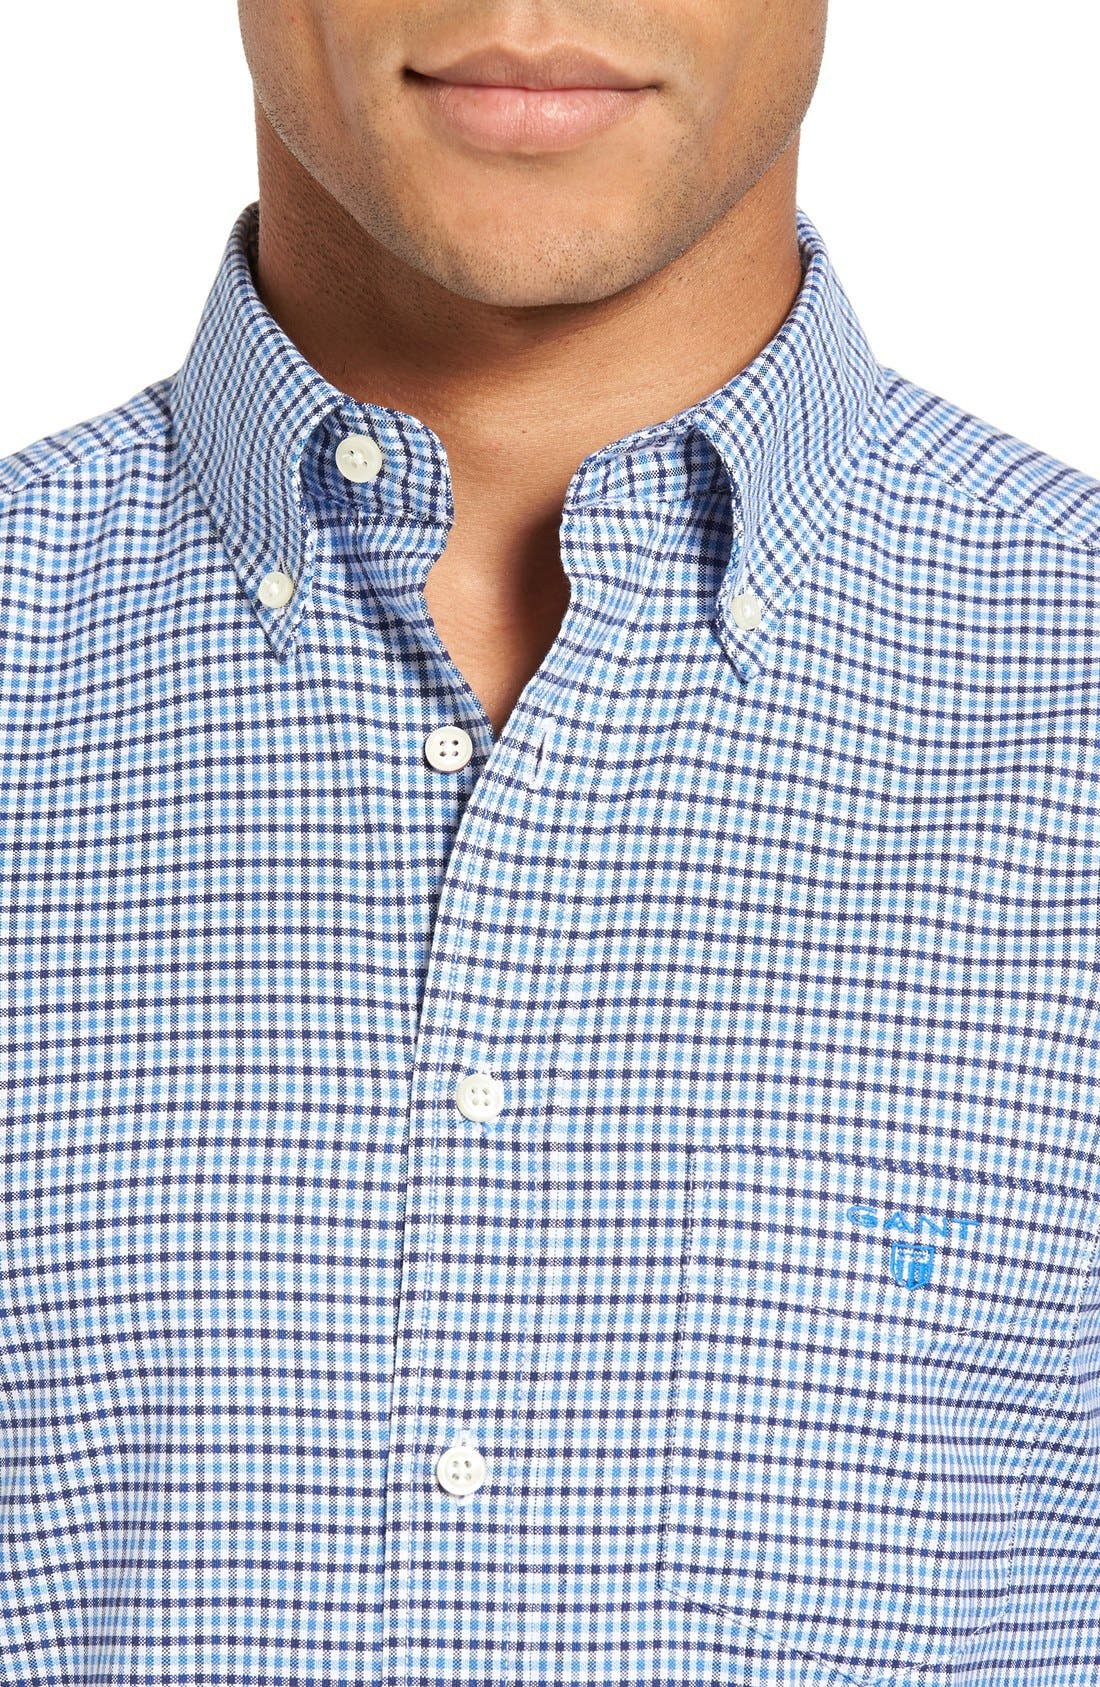 Gingham Fitted Sport Shirt,                             Alternate thumbnail 5, color,